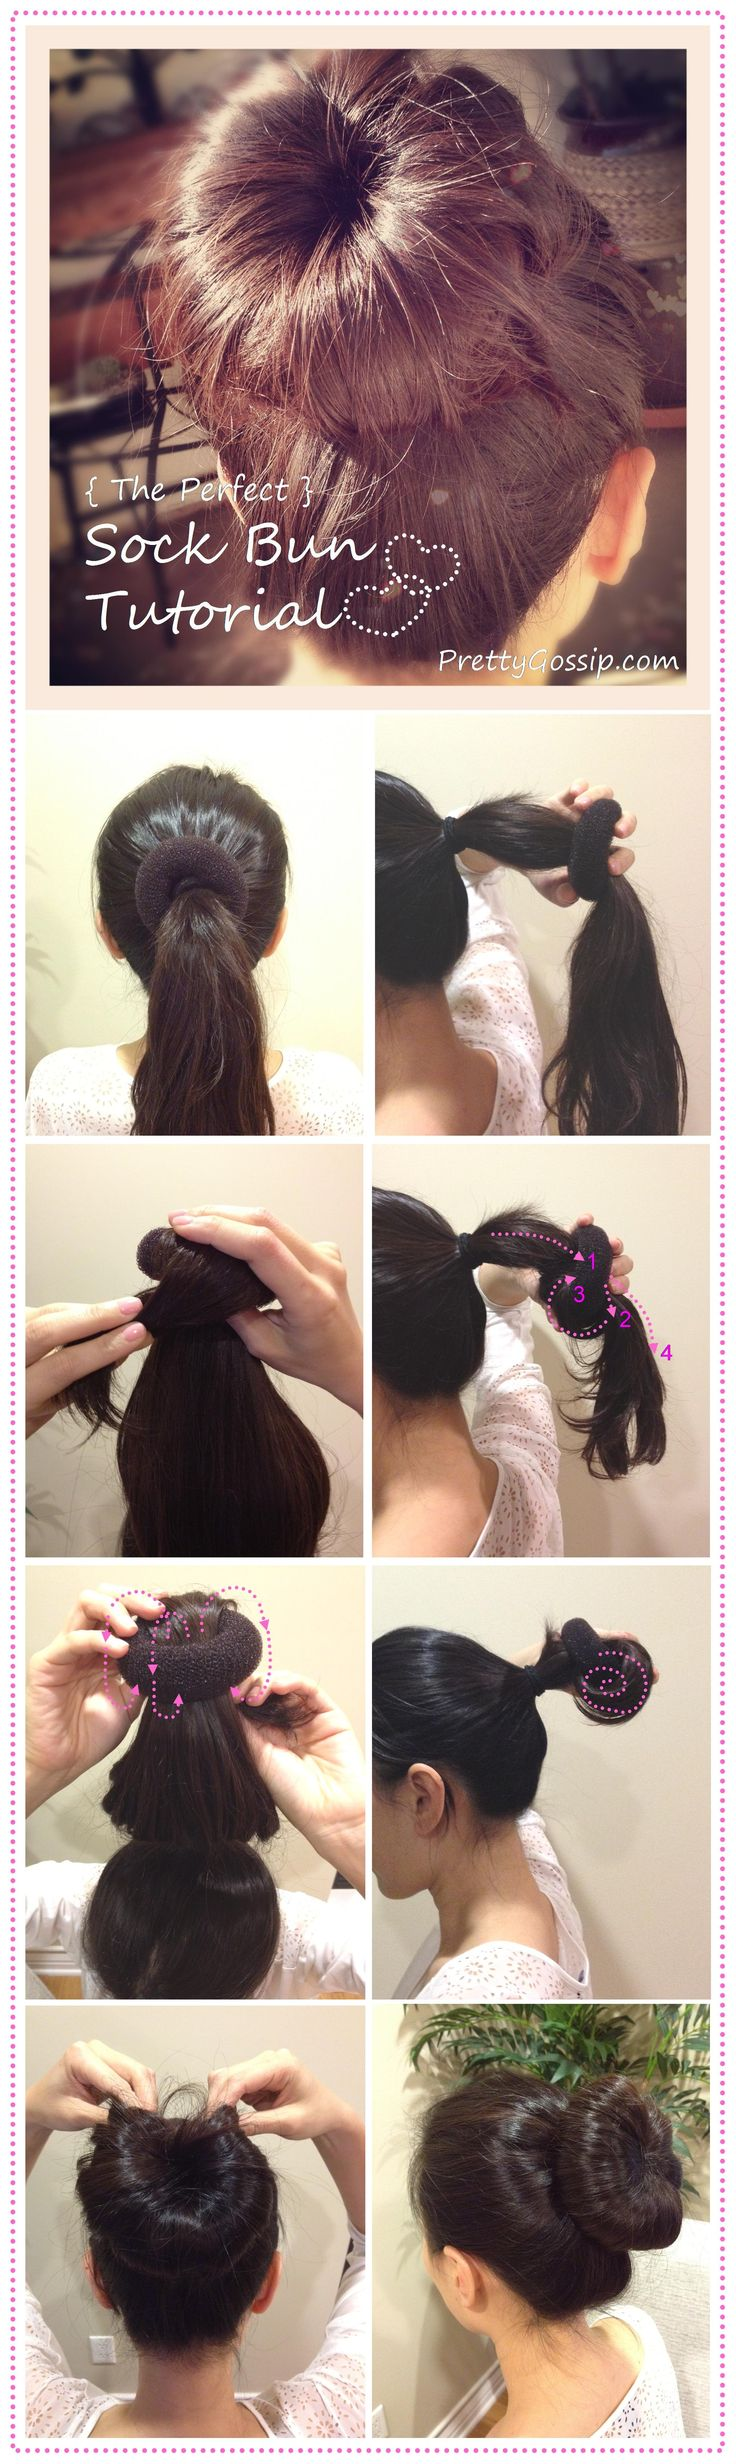 Sock Bun Tutorial from Pretty Gossip.